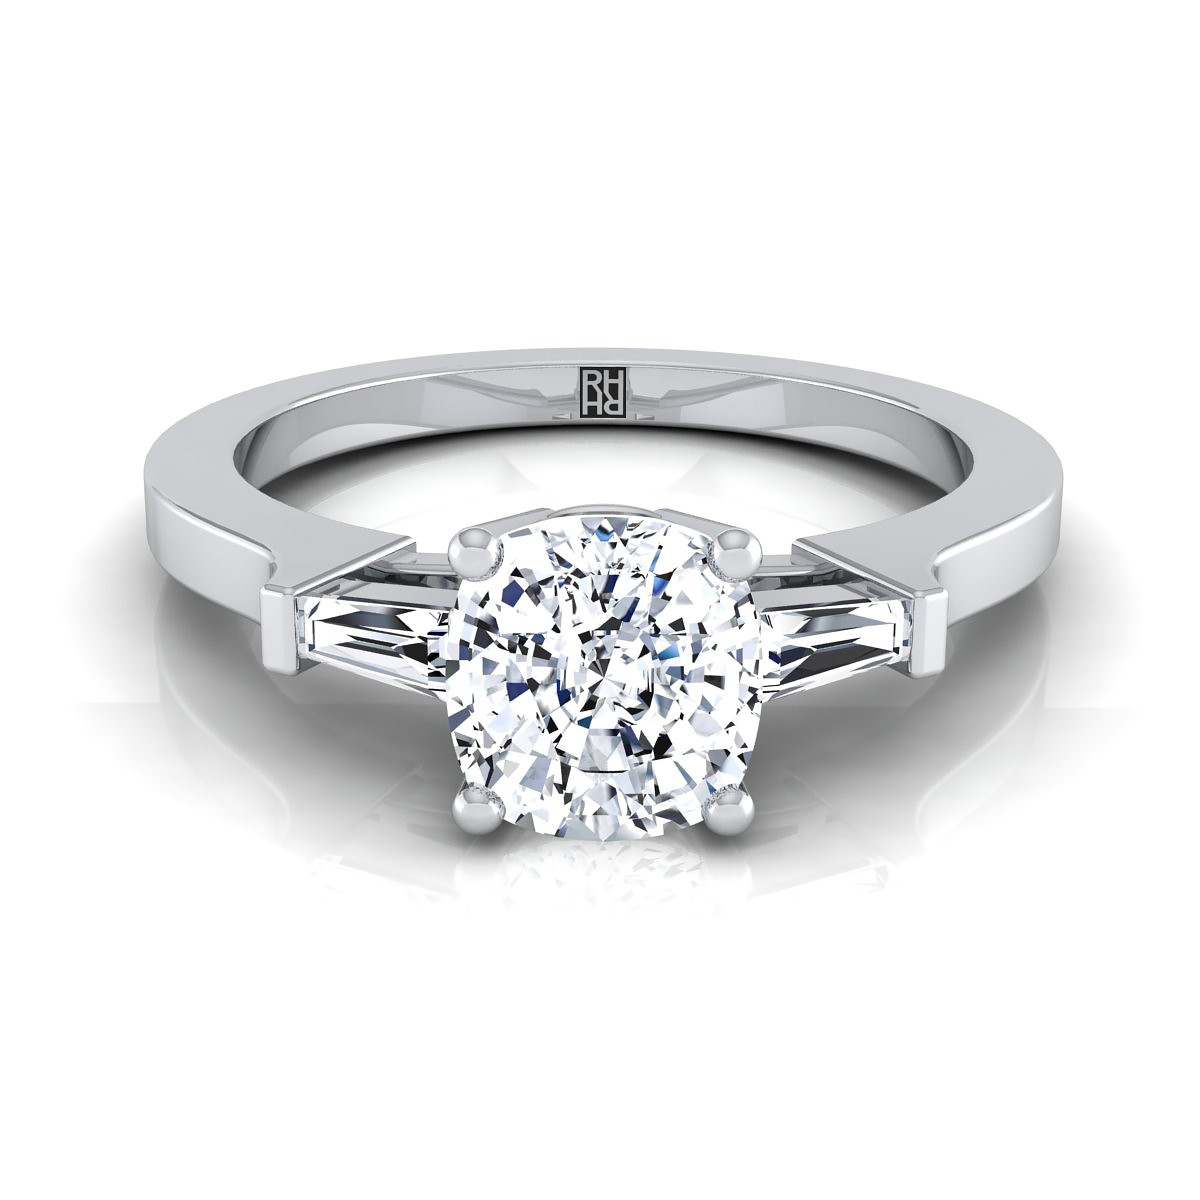 Featured Photo of Cushion Cut Engagement Rings With Tapered Baguette Side Stones